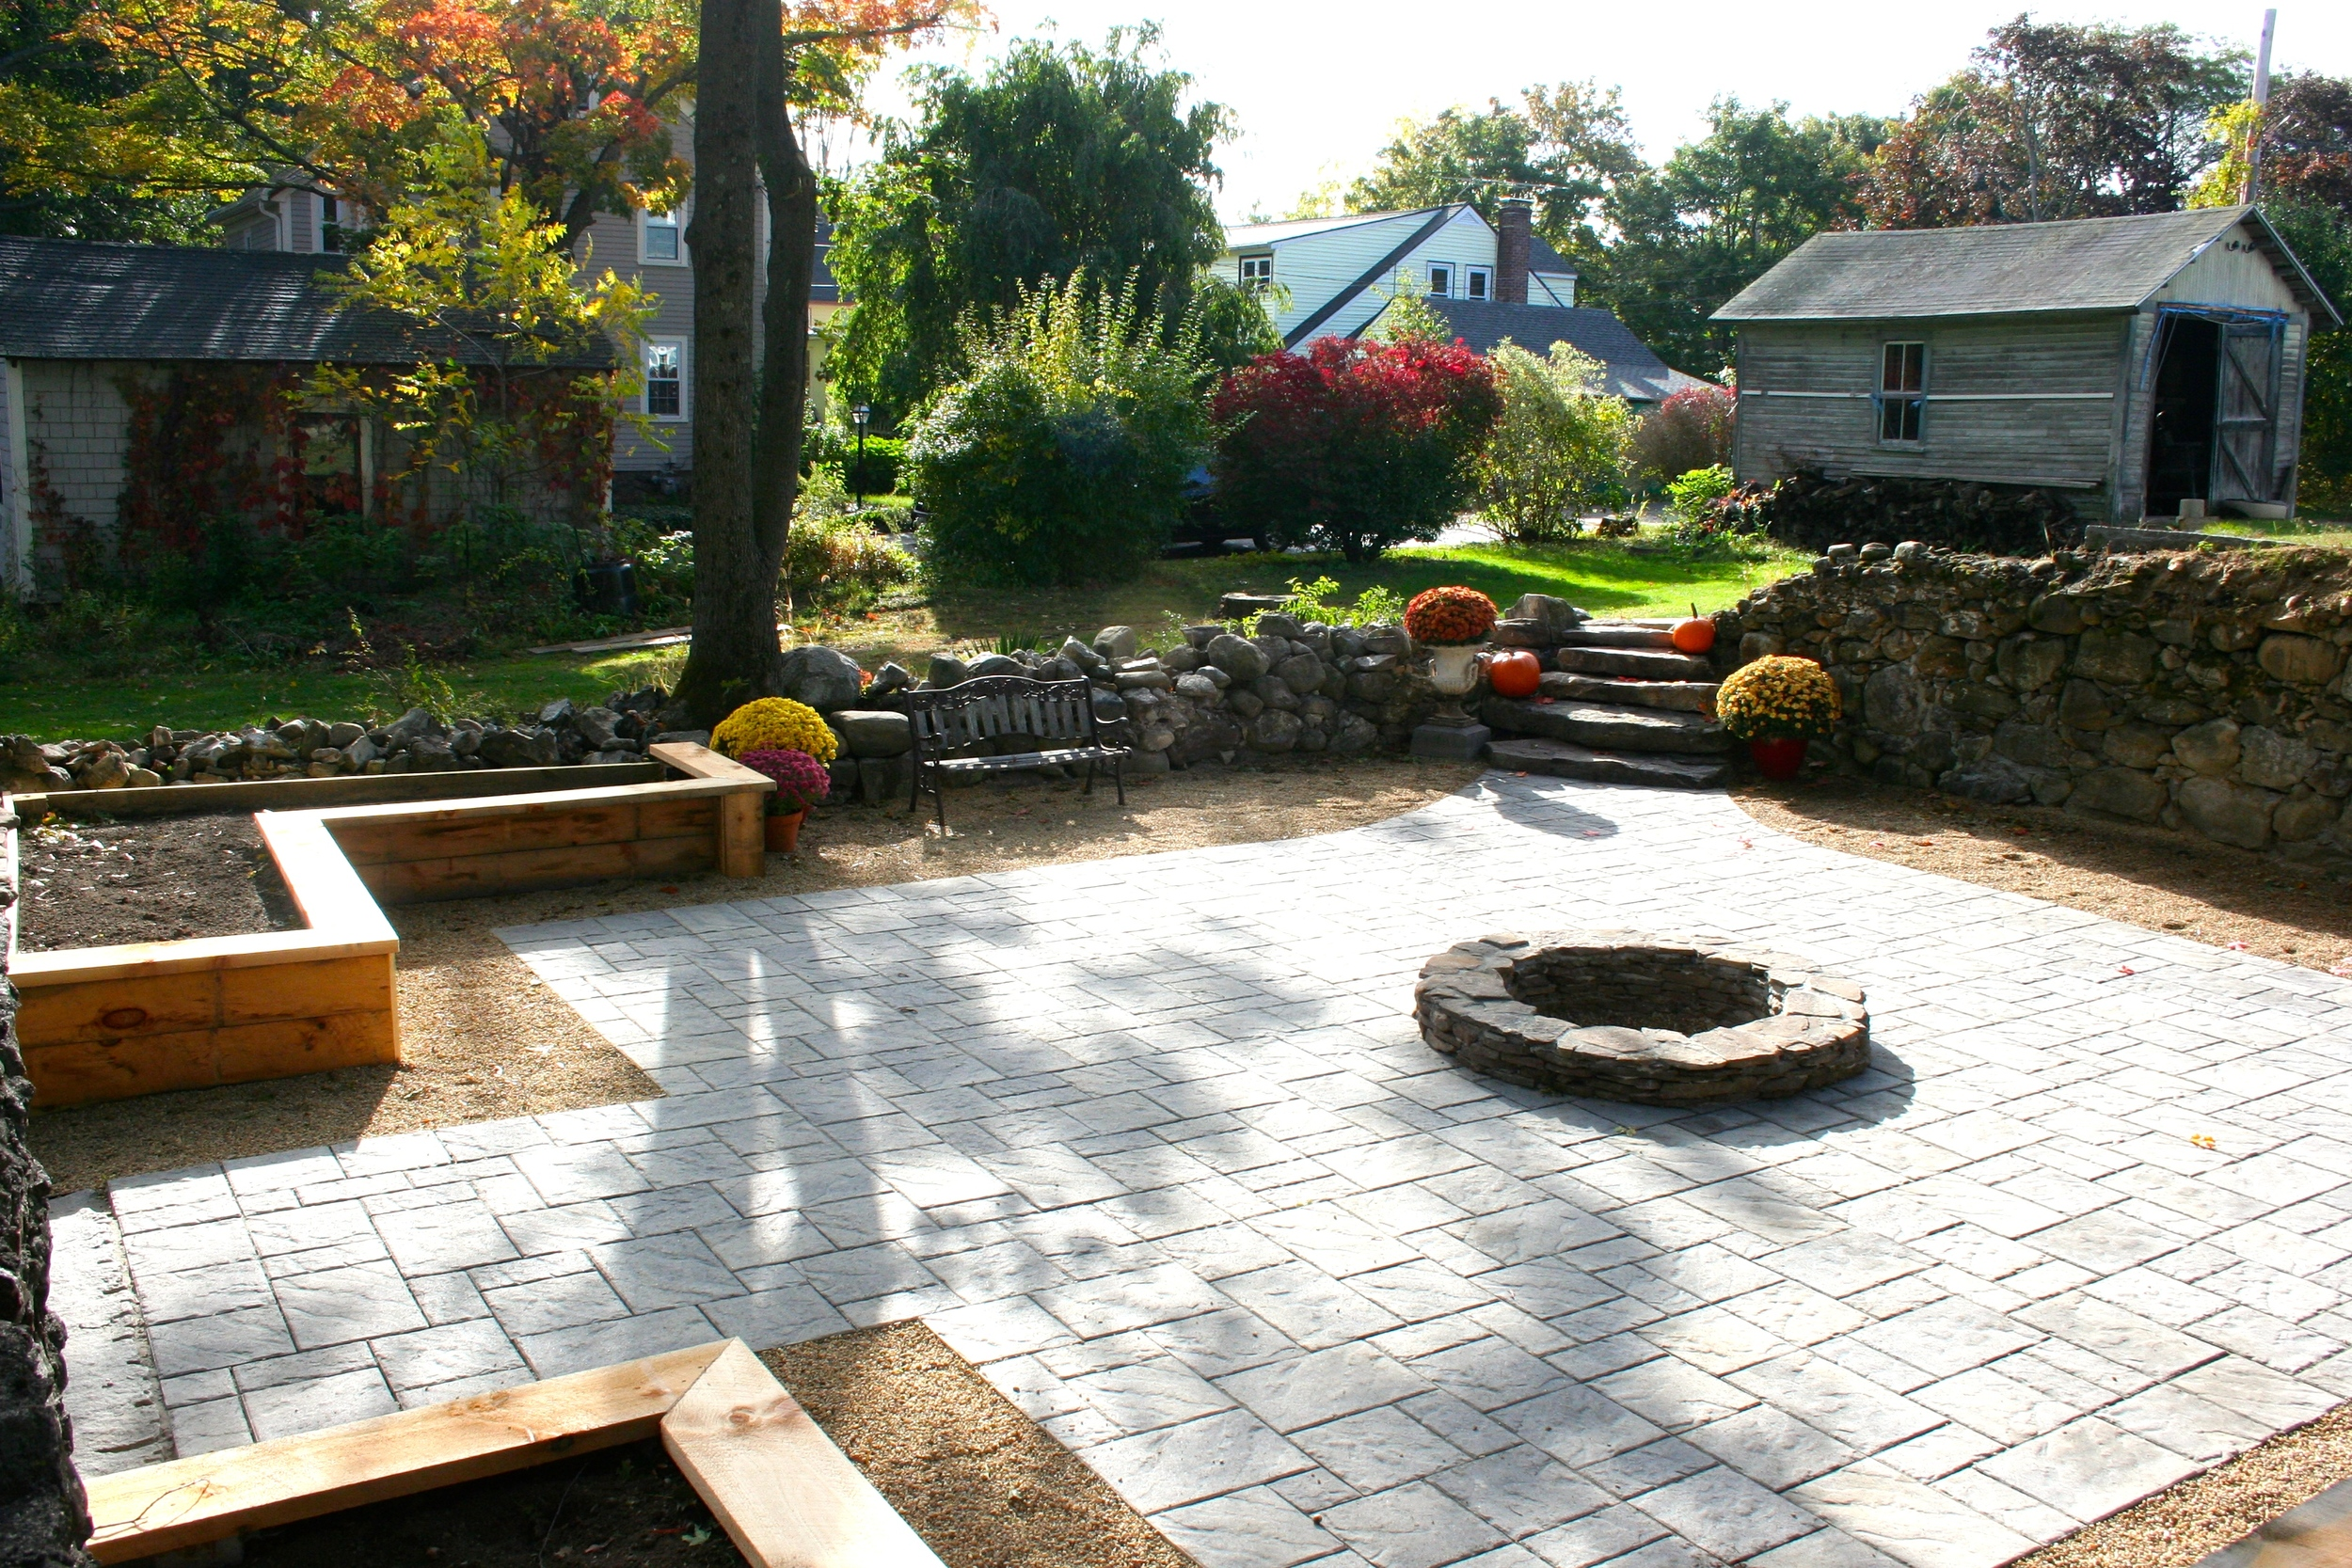 The foundation from a long-gone barn becomes an outdoor gathering area with built-in fire pit. We added natural stone stairs in one corner to easily access the house. Corner raised beds for growing flowers and vegetables help frame the design and provide seasonal interest.